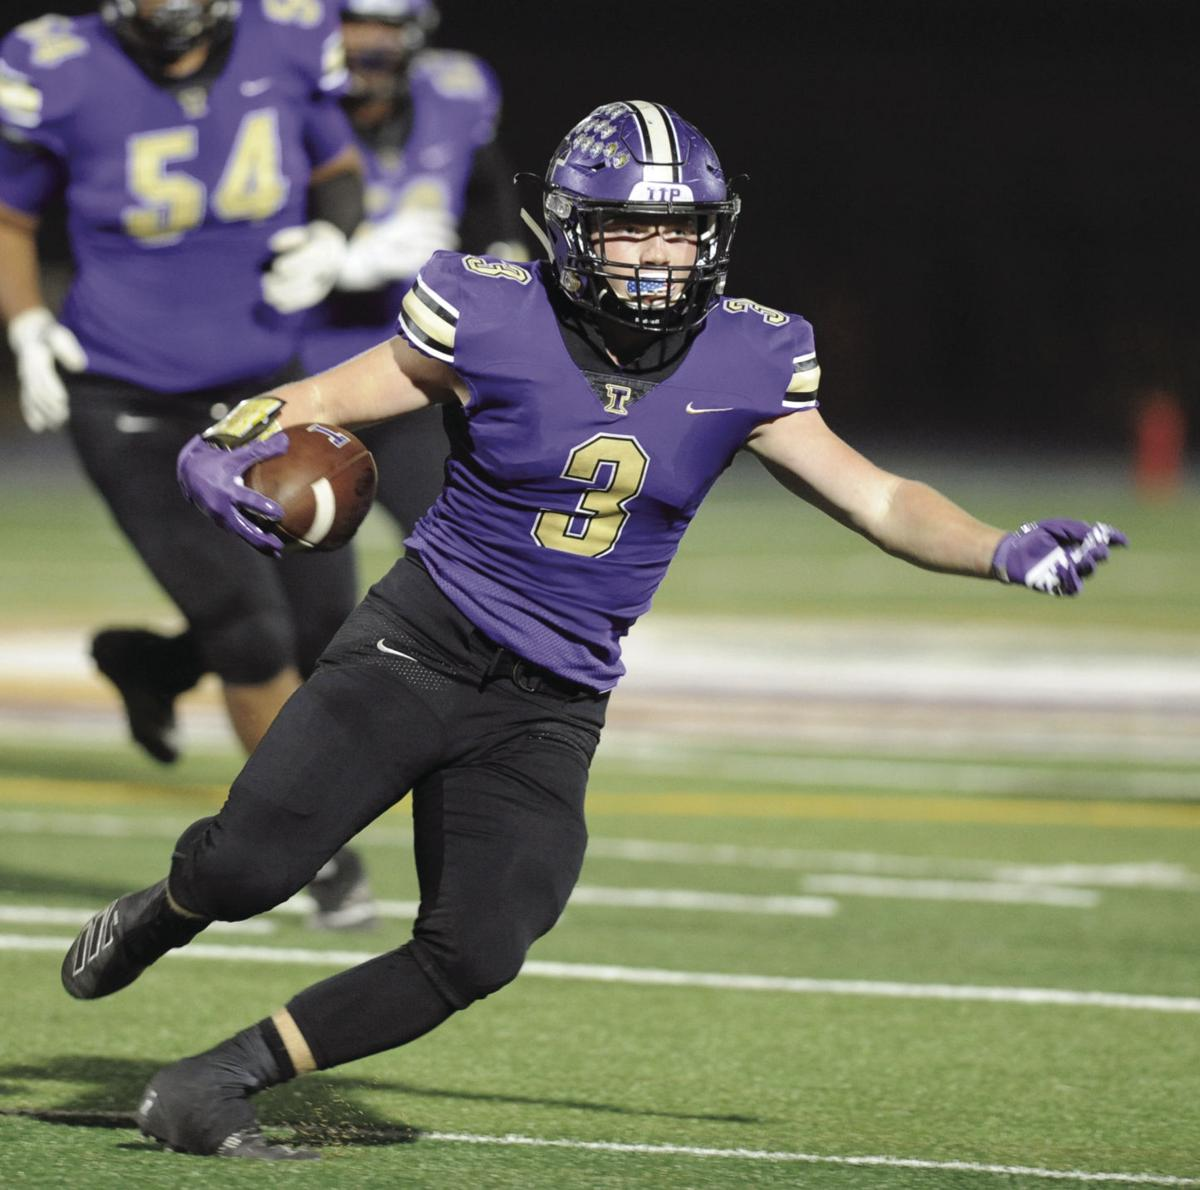 Flippin' out: Tokay RB goes for 272 yards, 5 TDs as Tigers hold off Pack